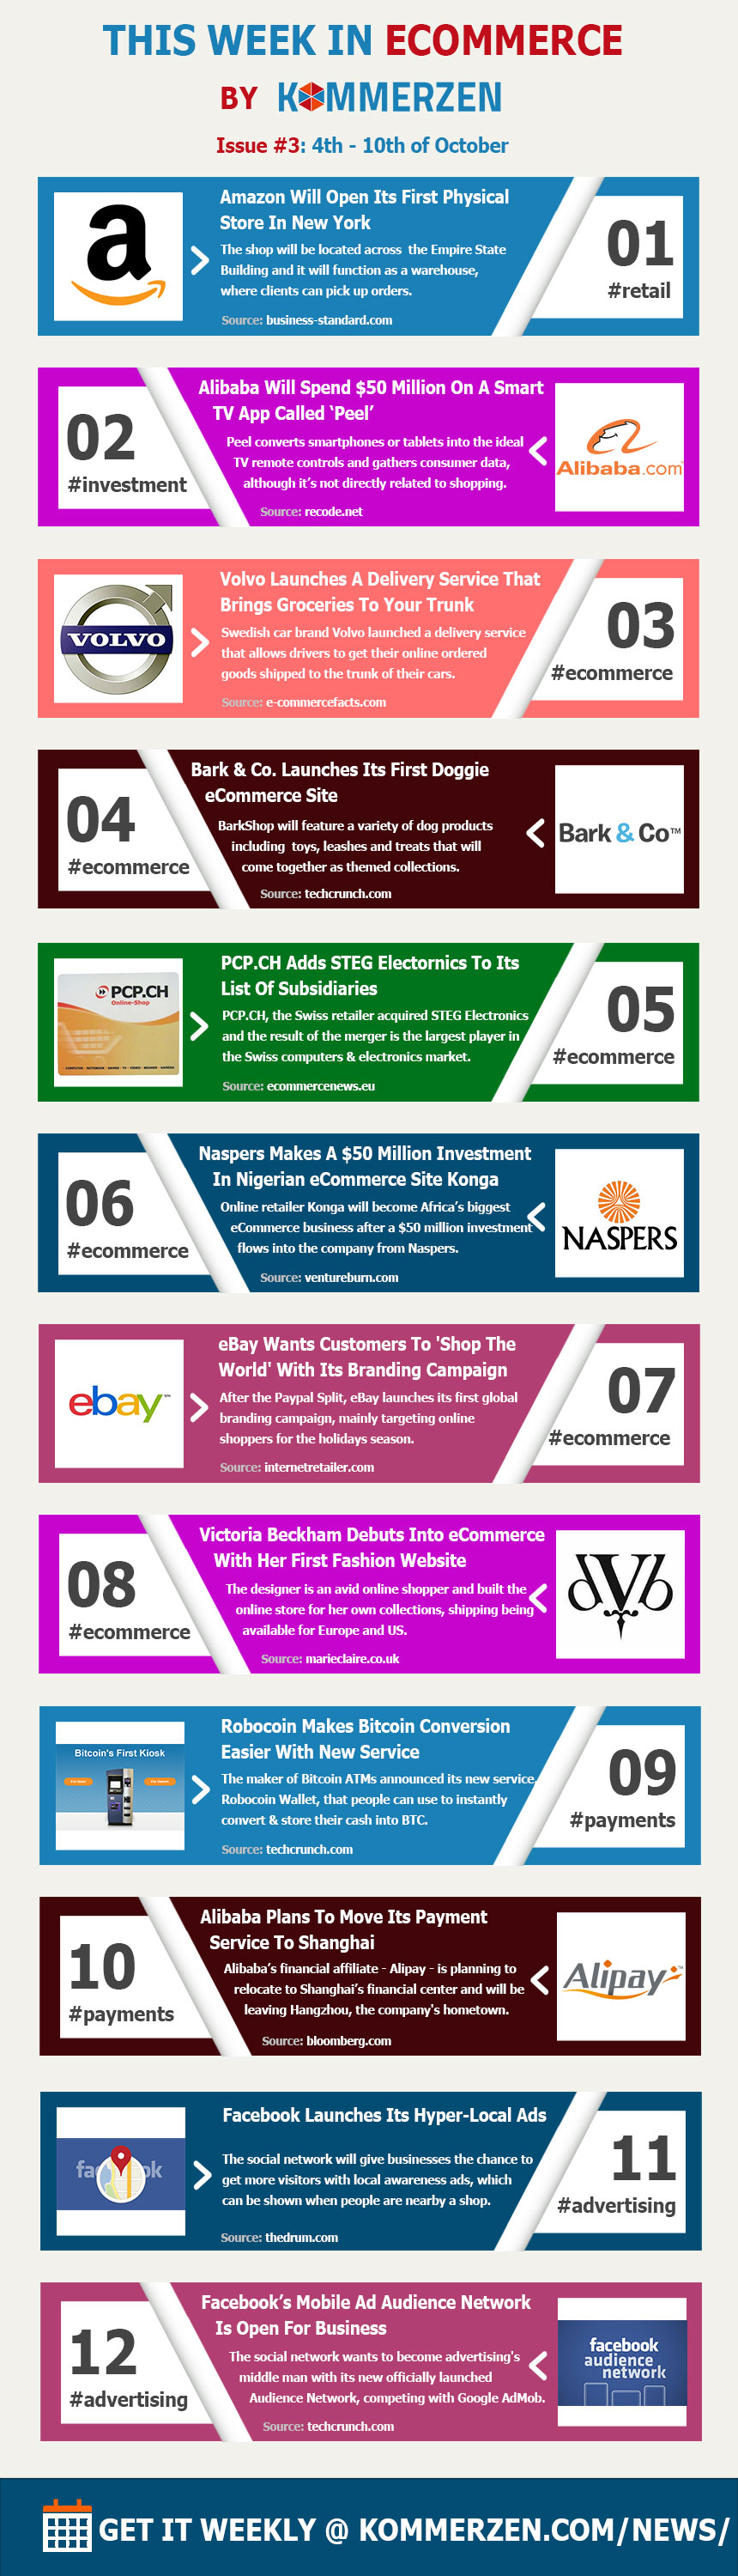 This Week in eCommerce #3